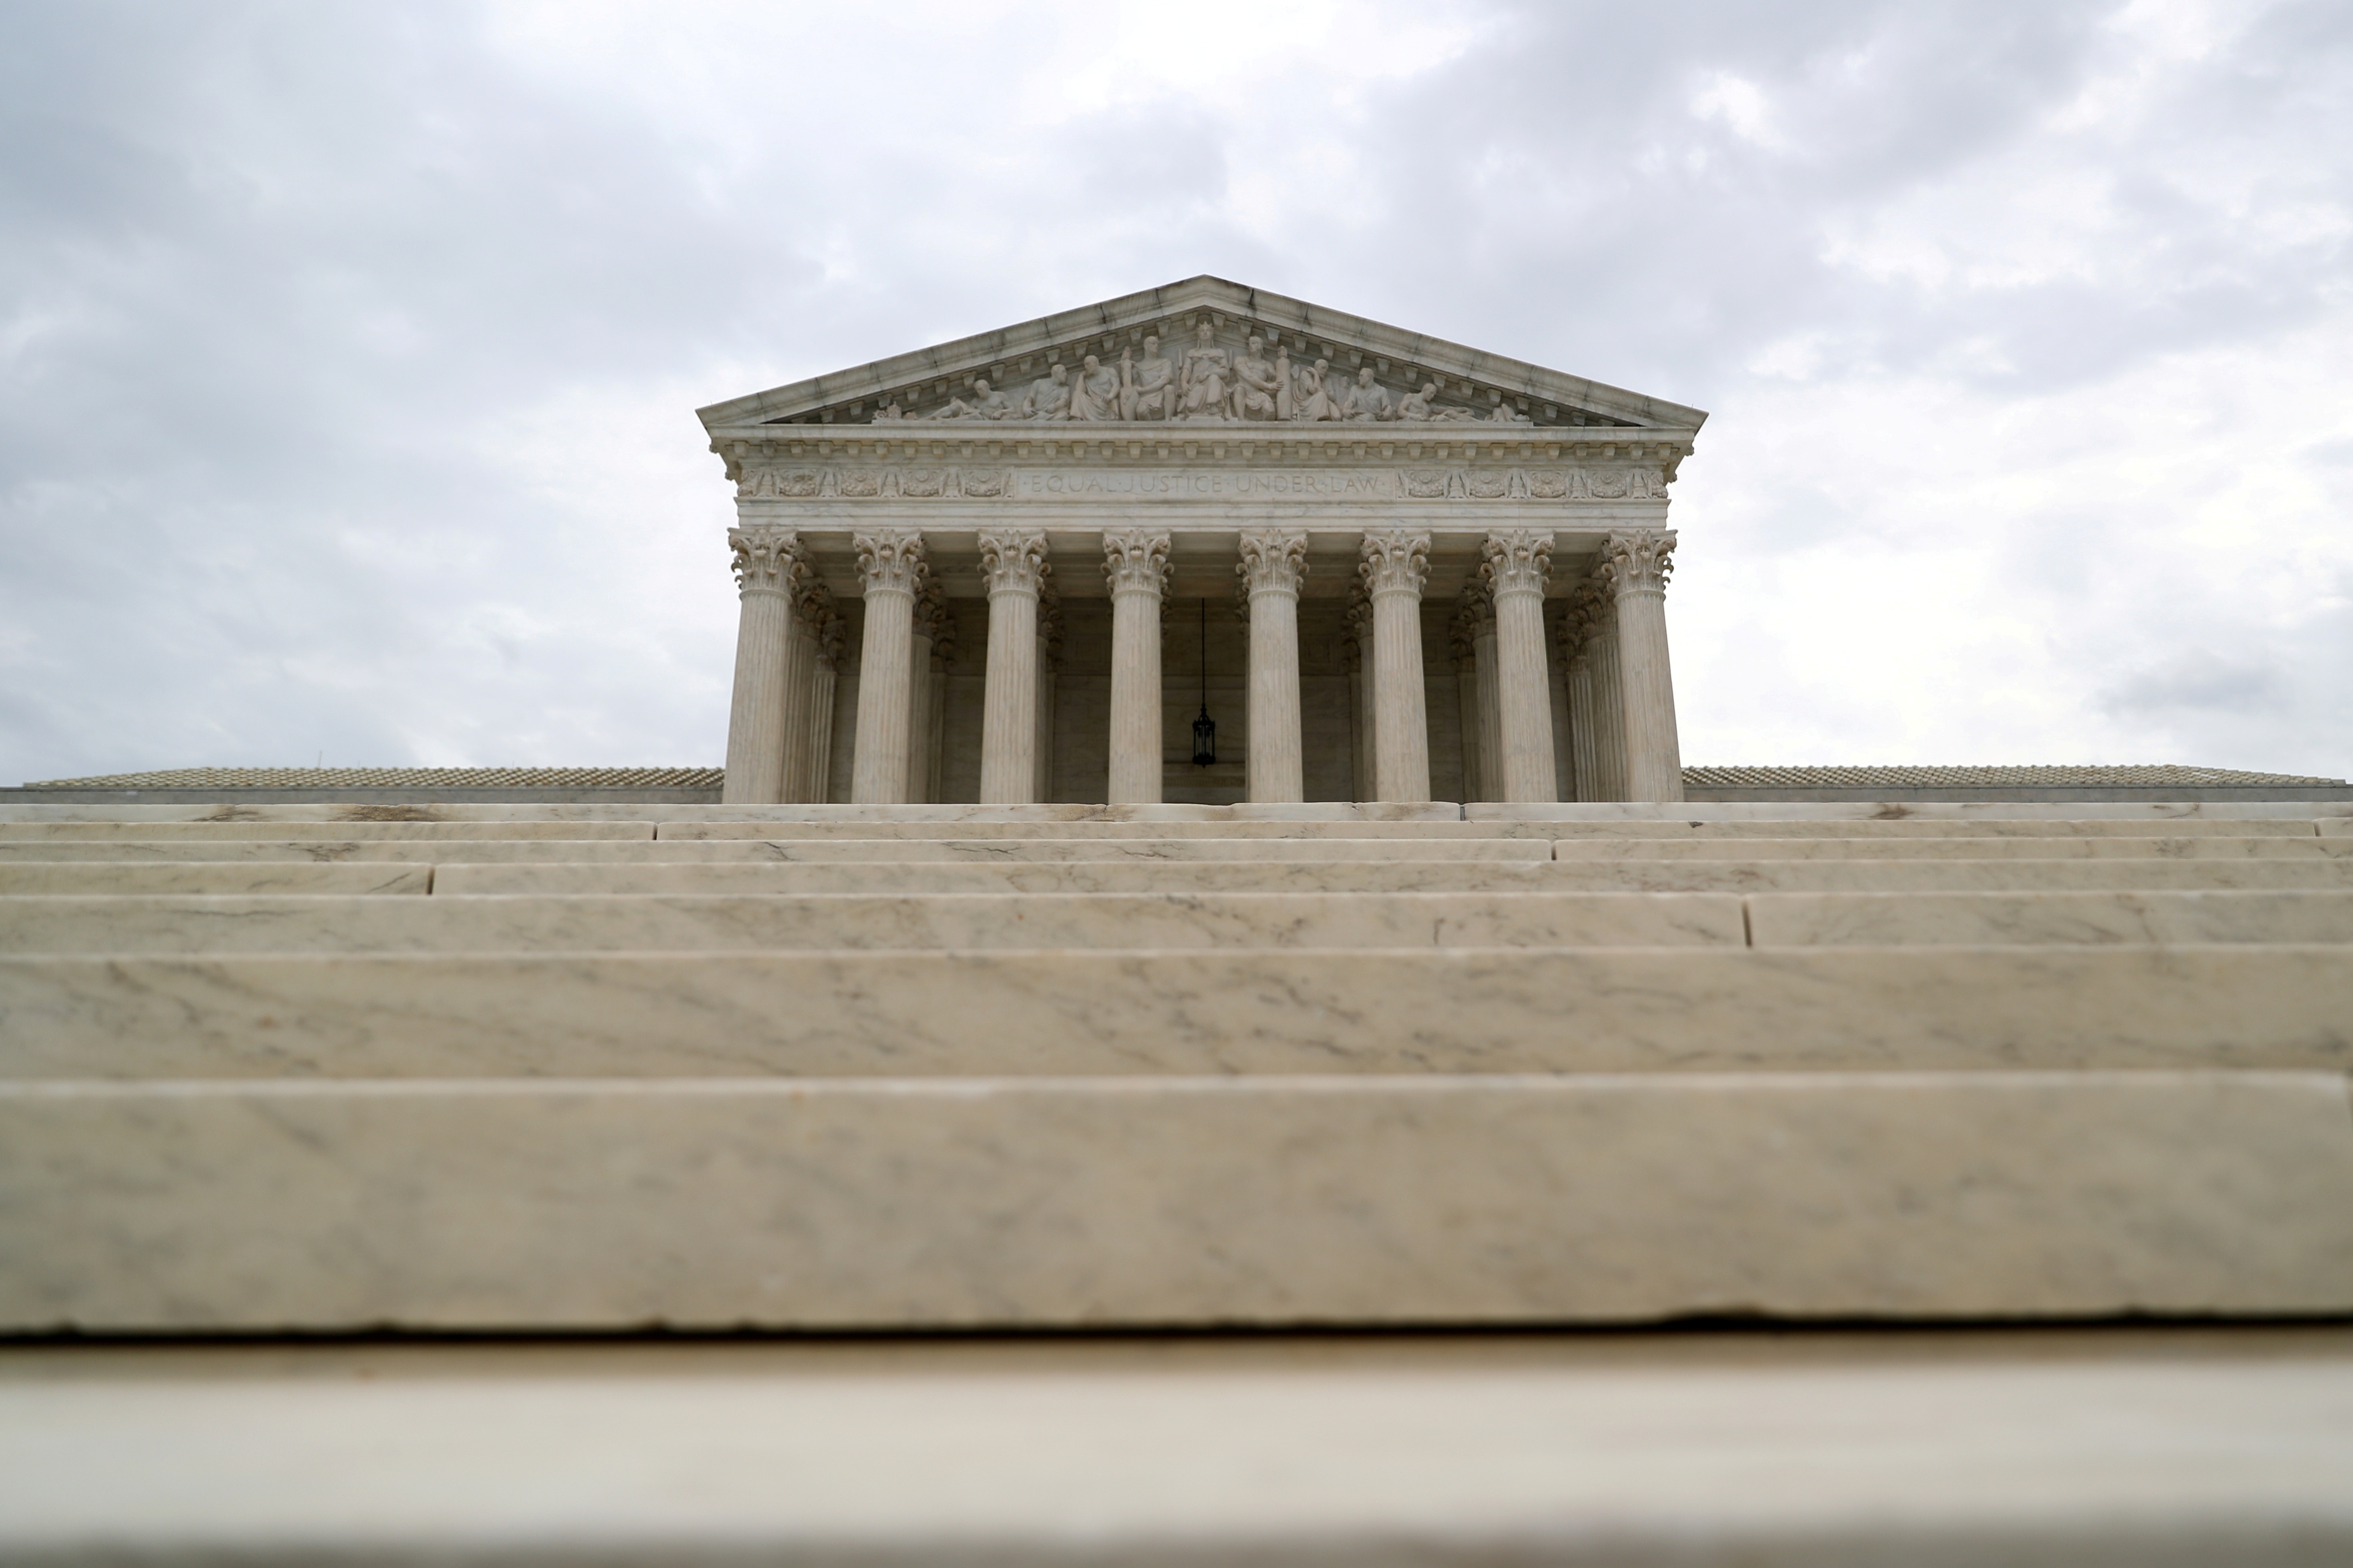 The U.S. Supreme Court is seen following an abortion ruling by the Texas legislature, in Washington, U.S., September 1, 2021.  REUTERS/Tom Brenner